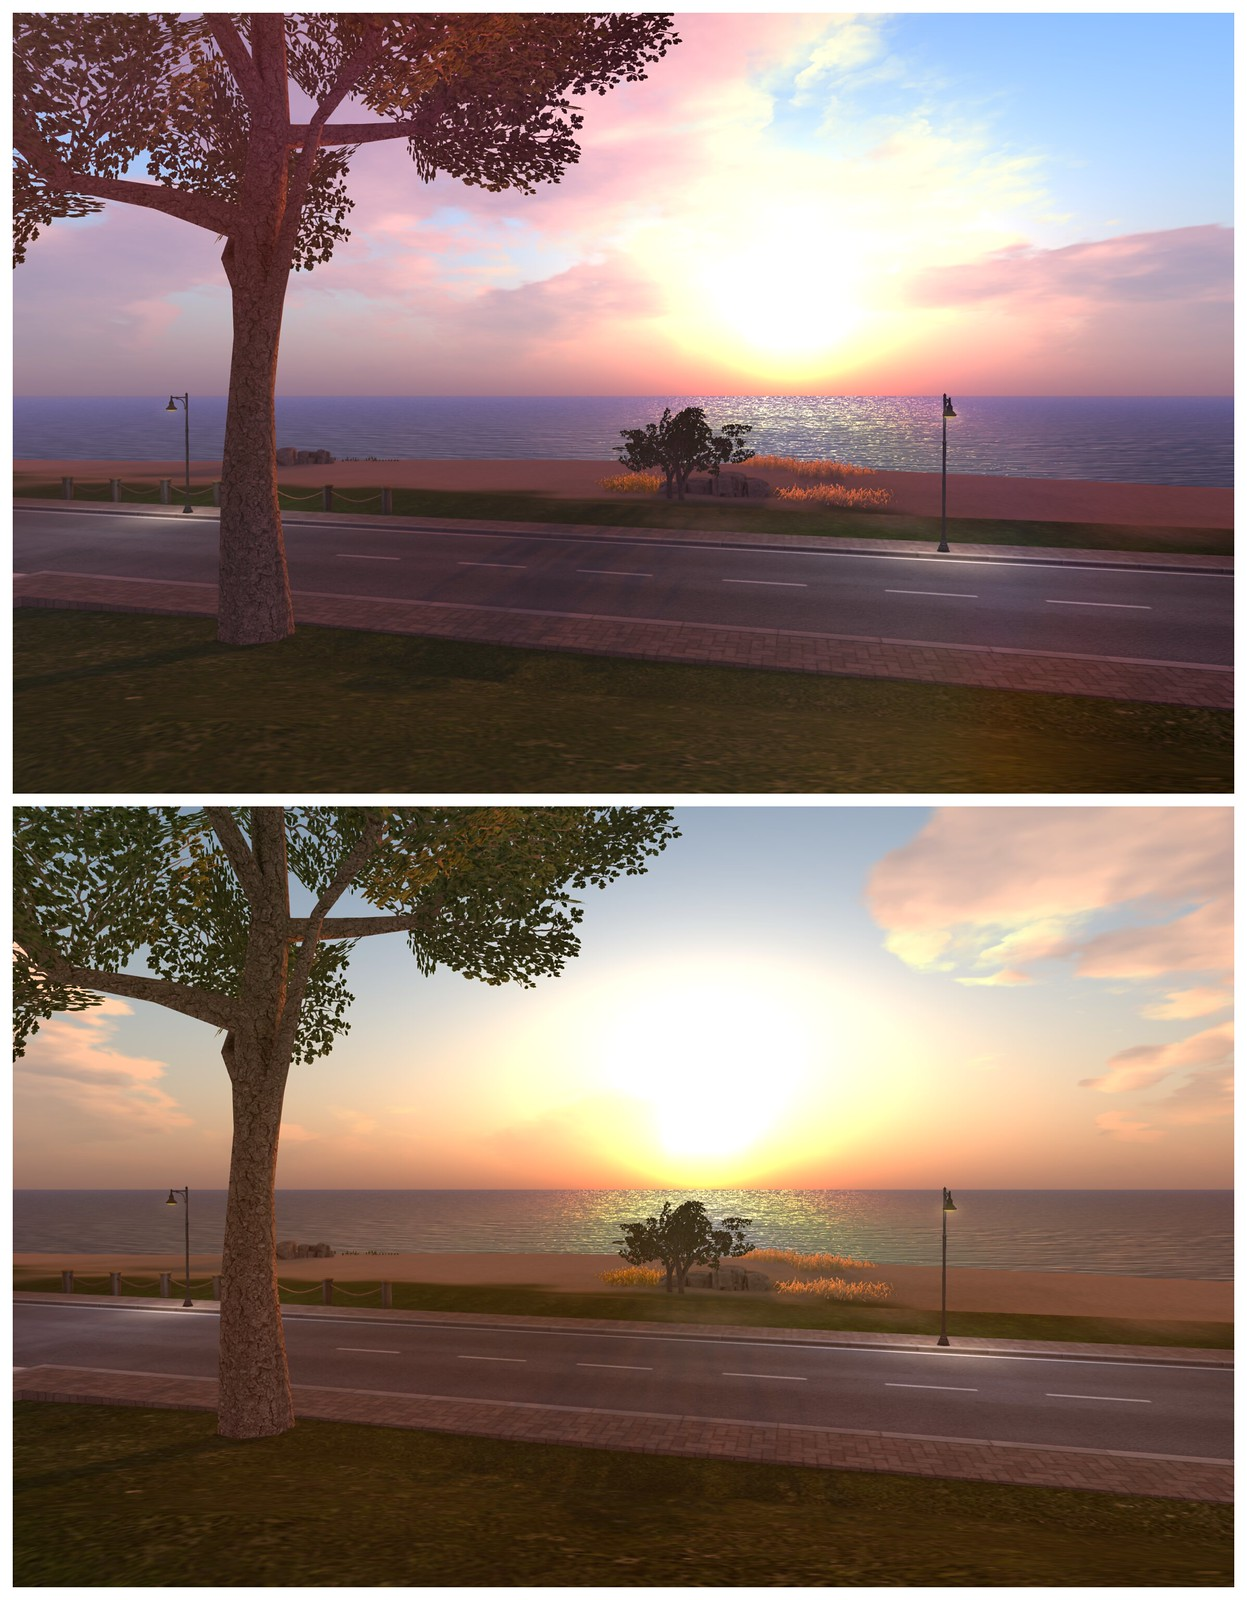 Sunrise/Sunset